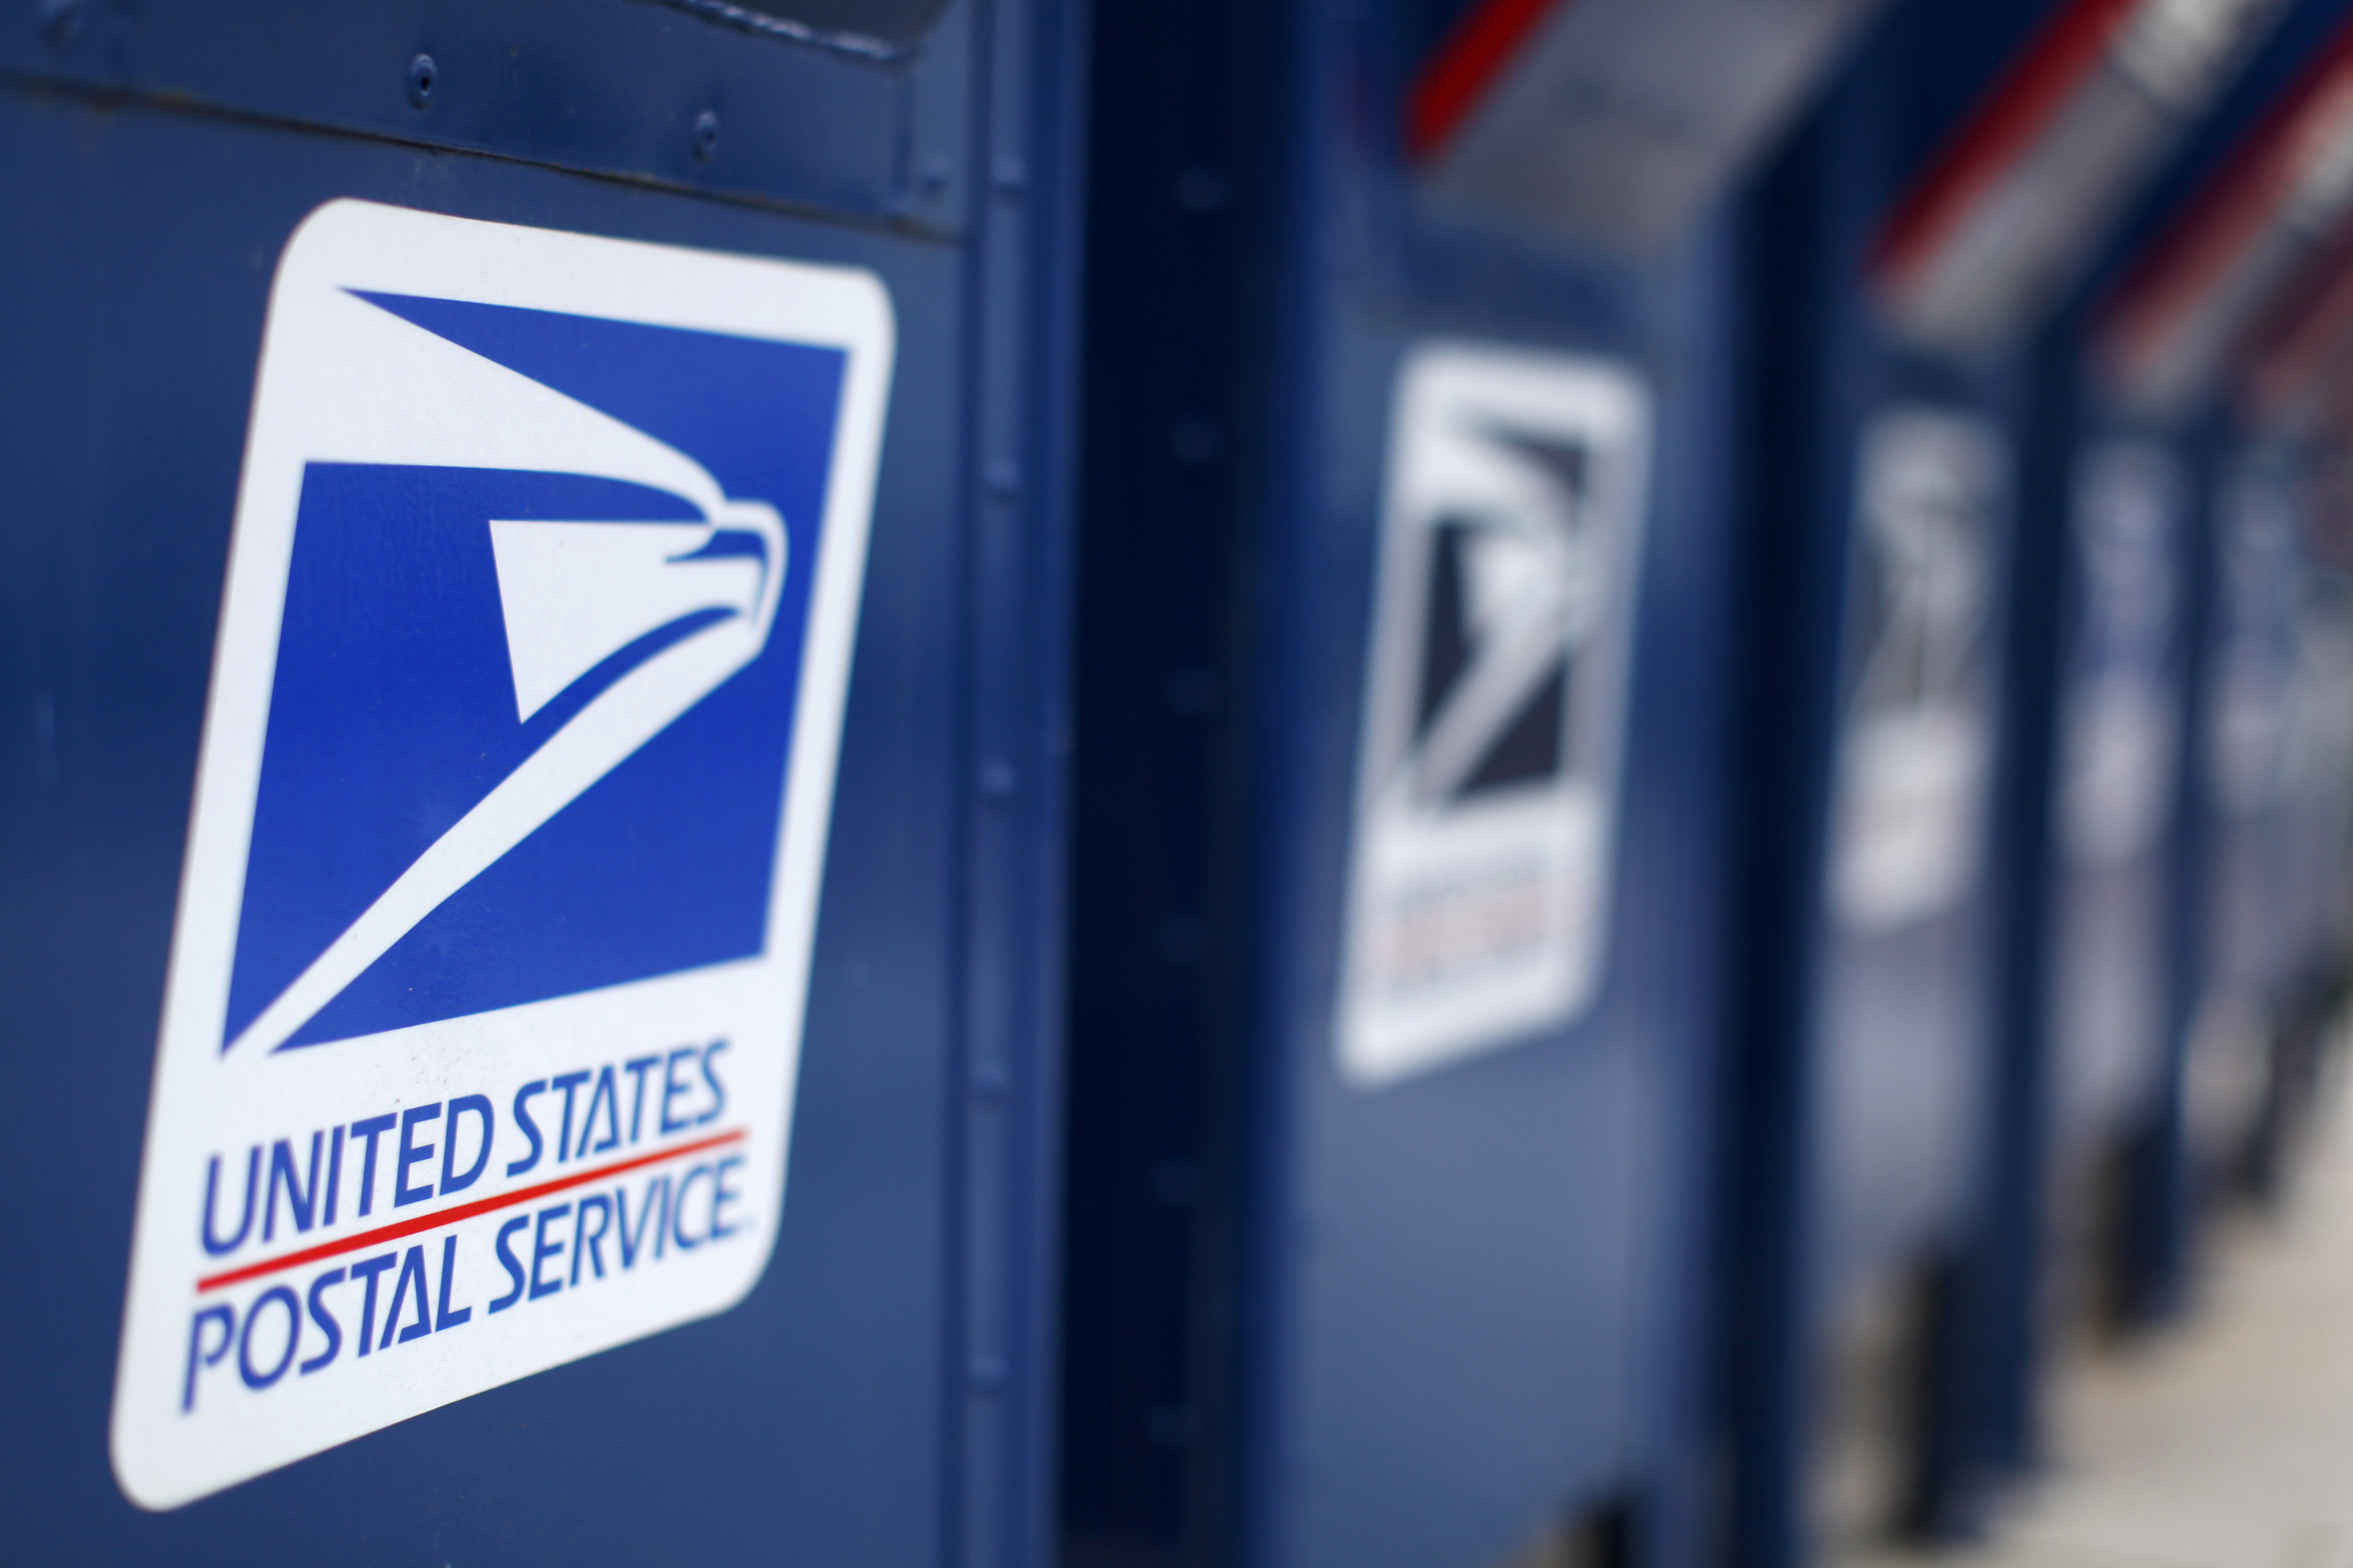 FILE PHOTO - A view shows U.S. postal service mail boxes at a post office in Encinitas, California in this February 6, 2013, file photo. REUTERS/Mike Blake/Files